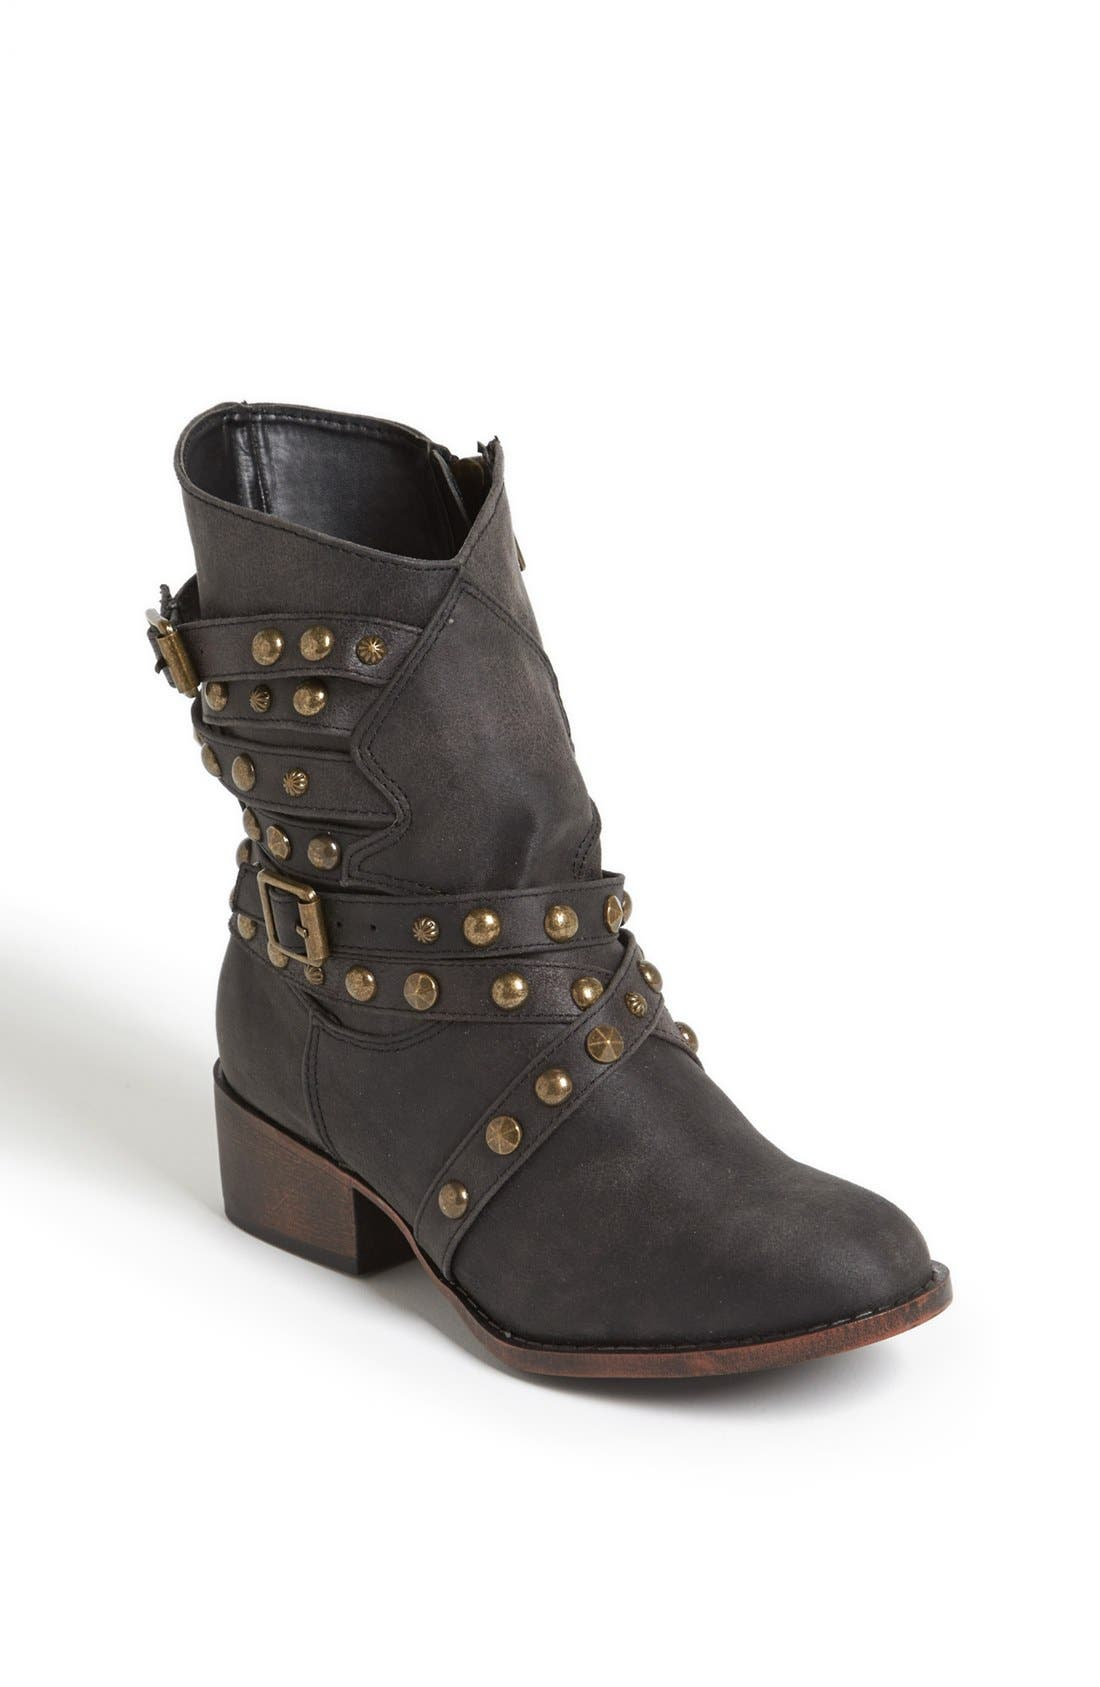 Alternate Image 1 Selected - Steve Madden 'Haley' Boot (Little Kid & Big Kid)